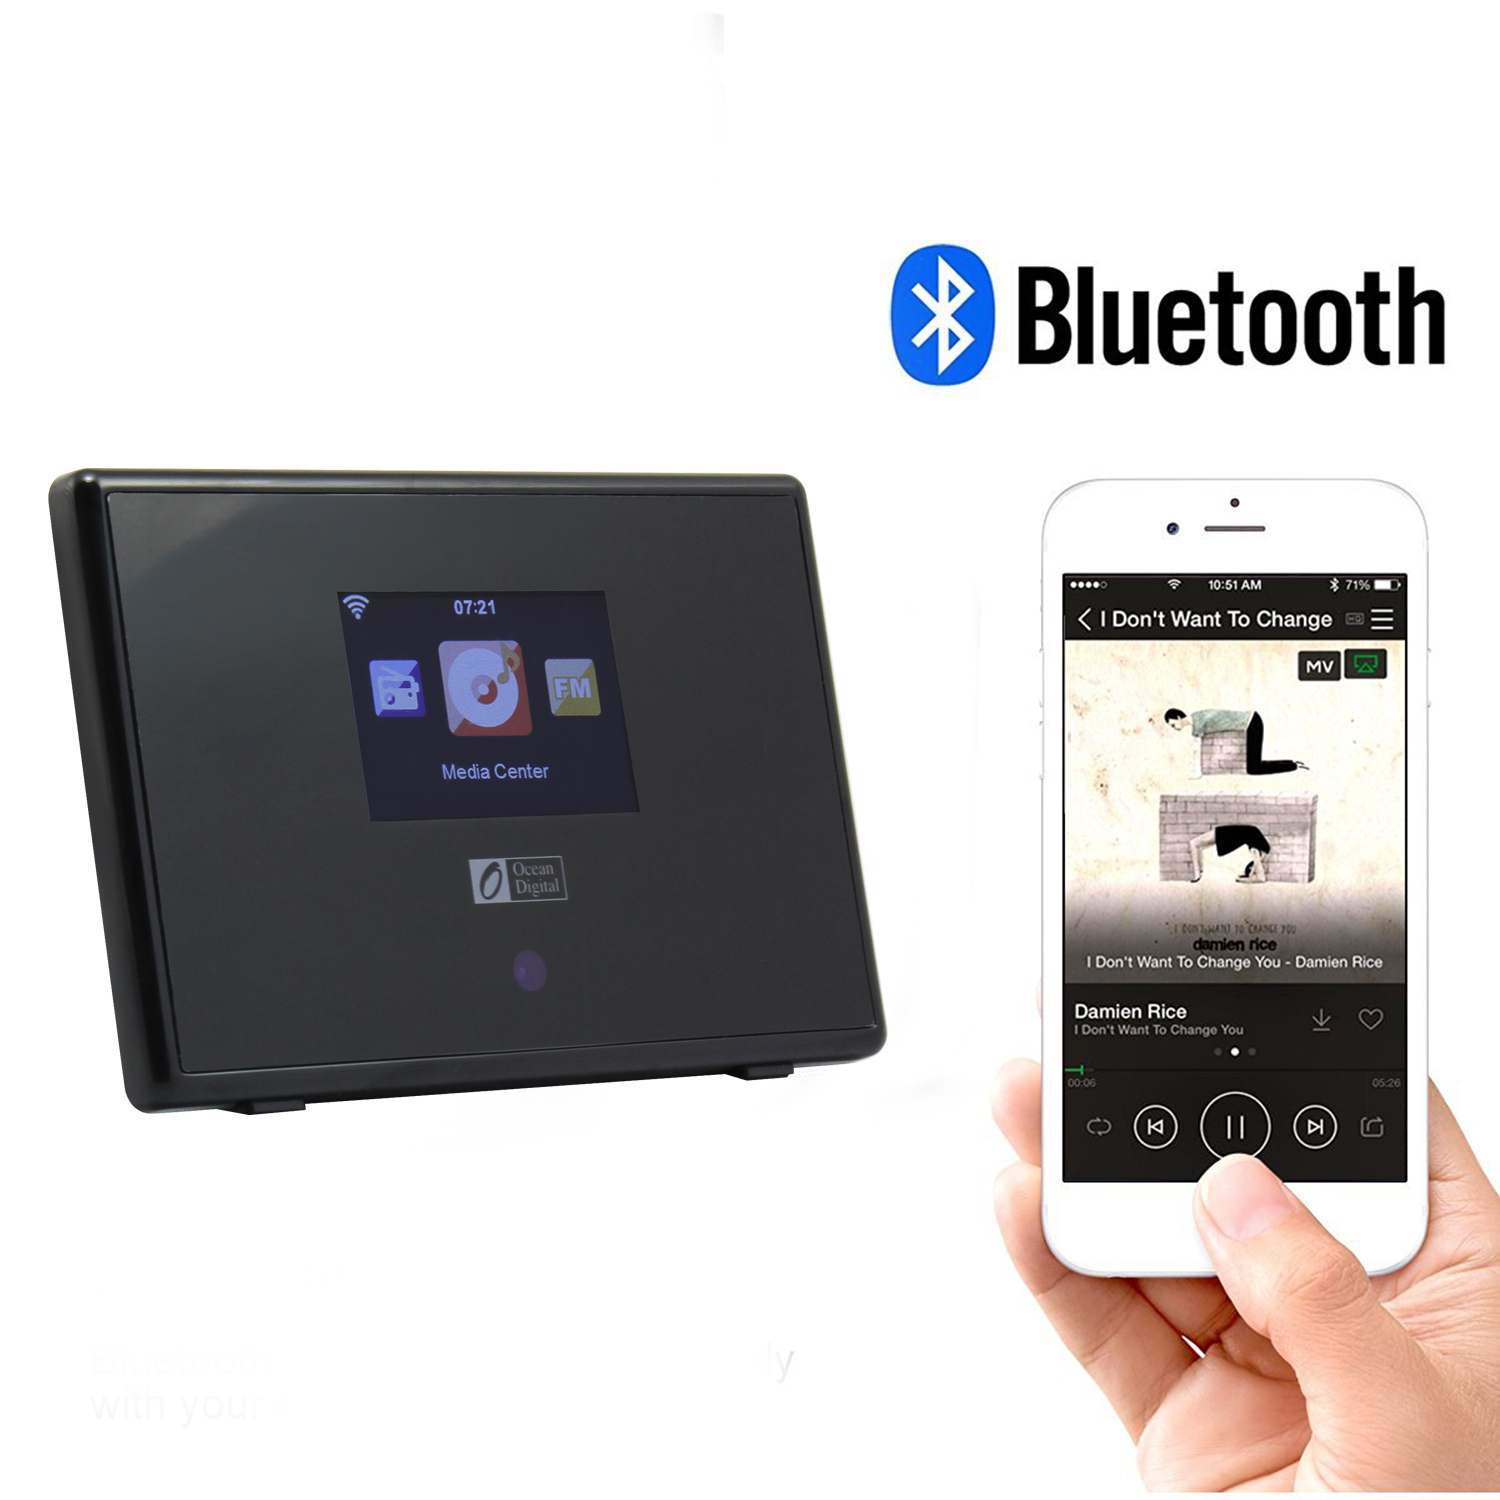 IRT-01 bluetooth.jpg